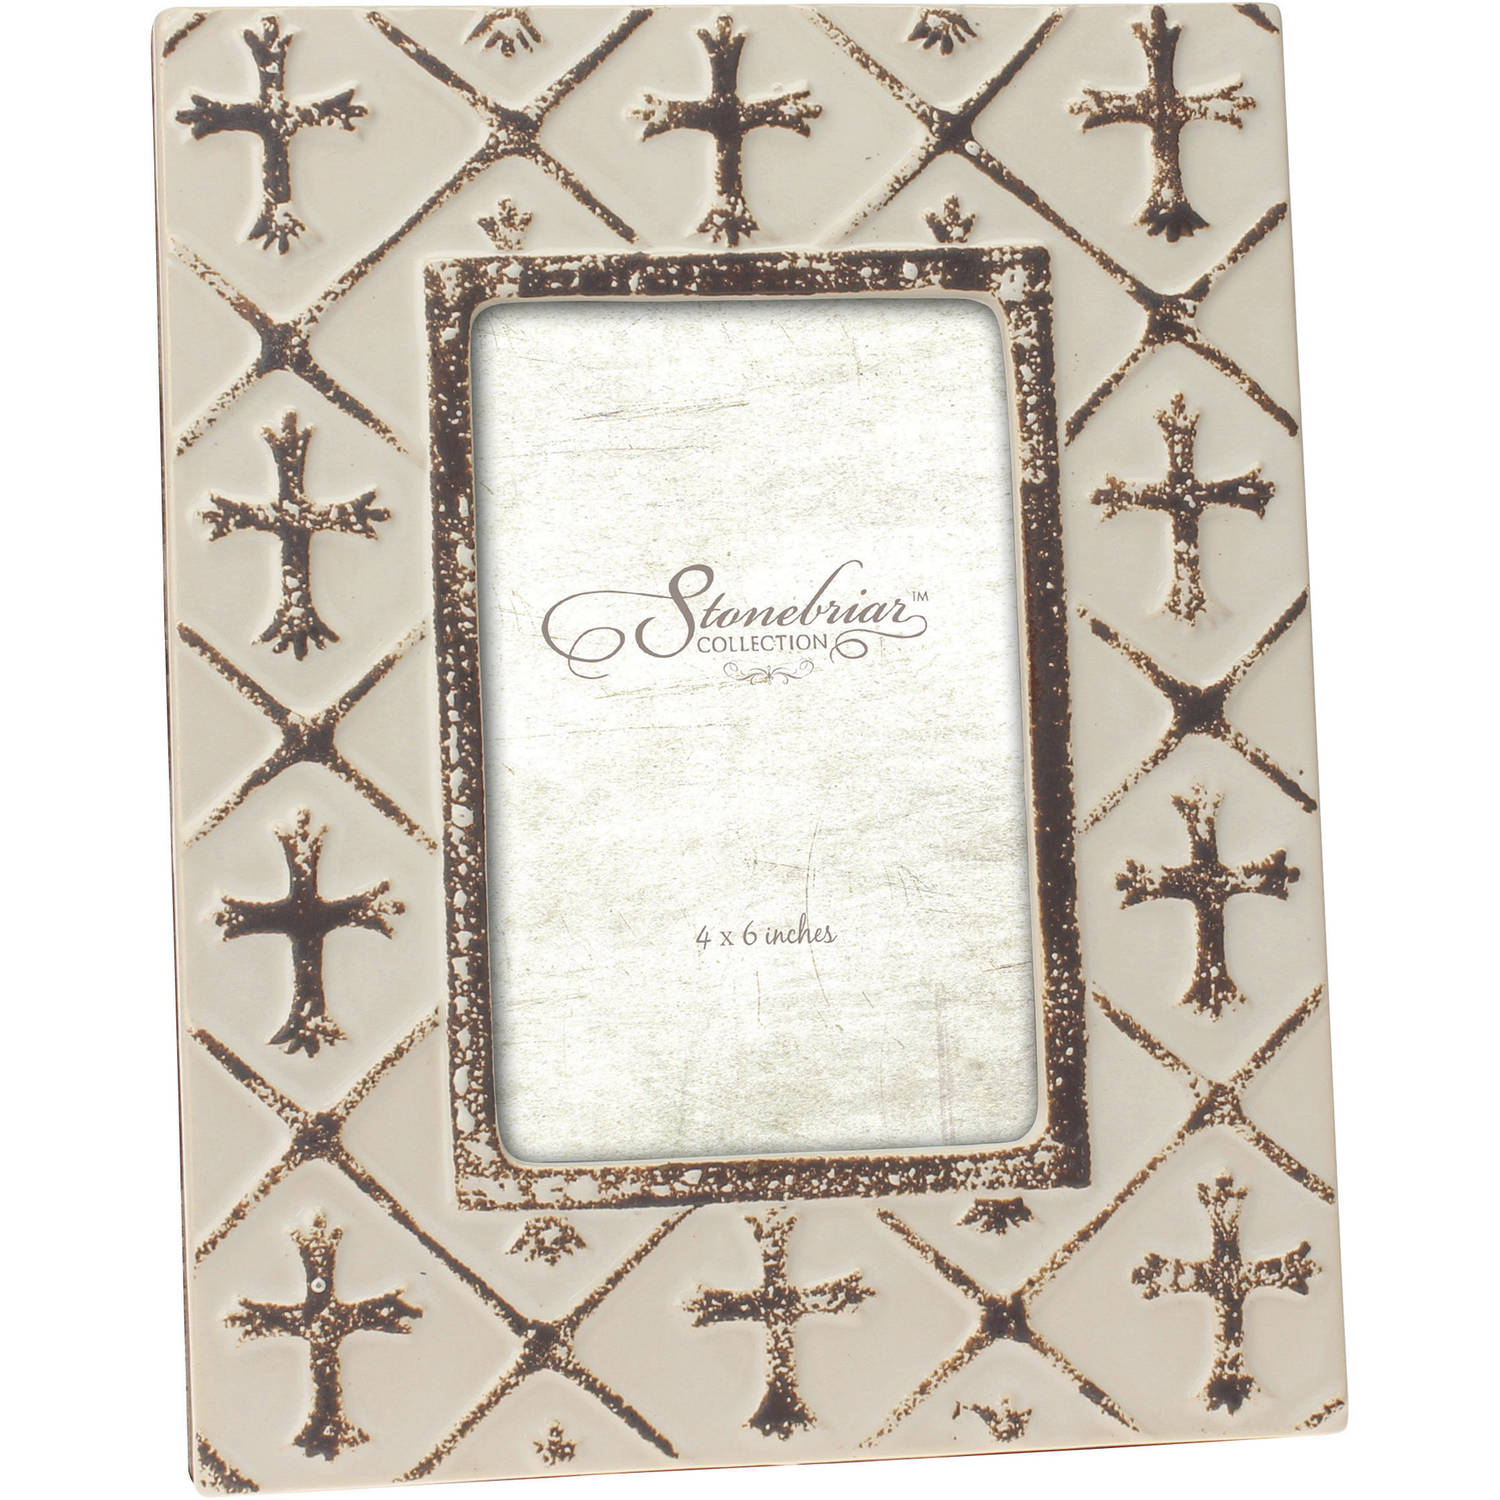 "Ceramic Worn White Finish Cross 4"" x 6"" Photo Frame"